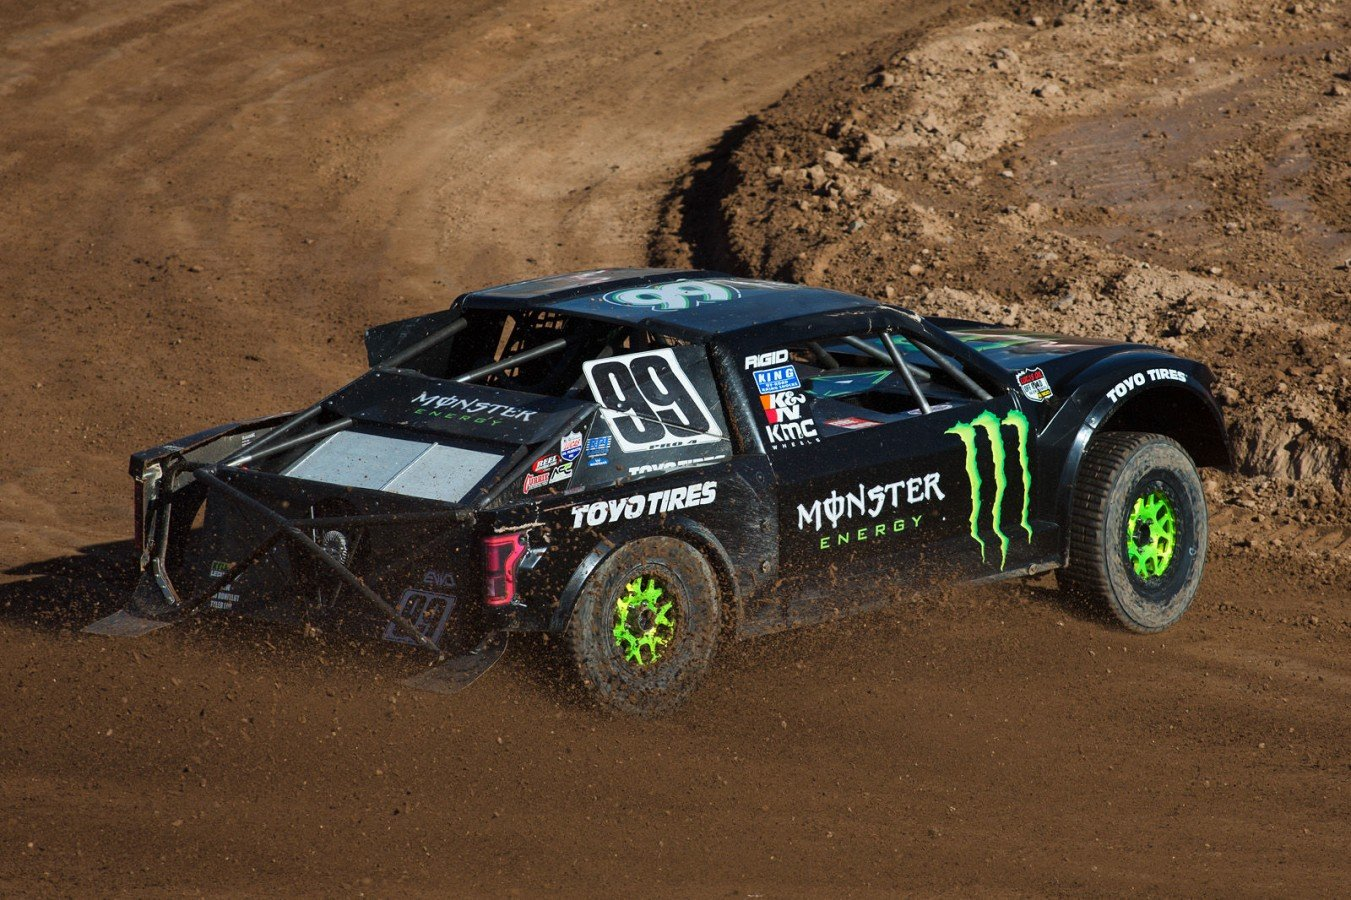 Kyle Leduc wins the Lucas Oil Off Road Racing Series in Chandler, AZ